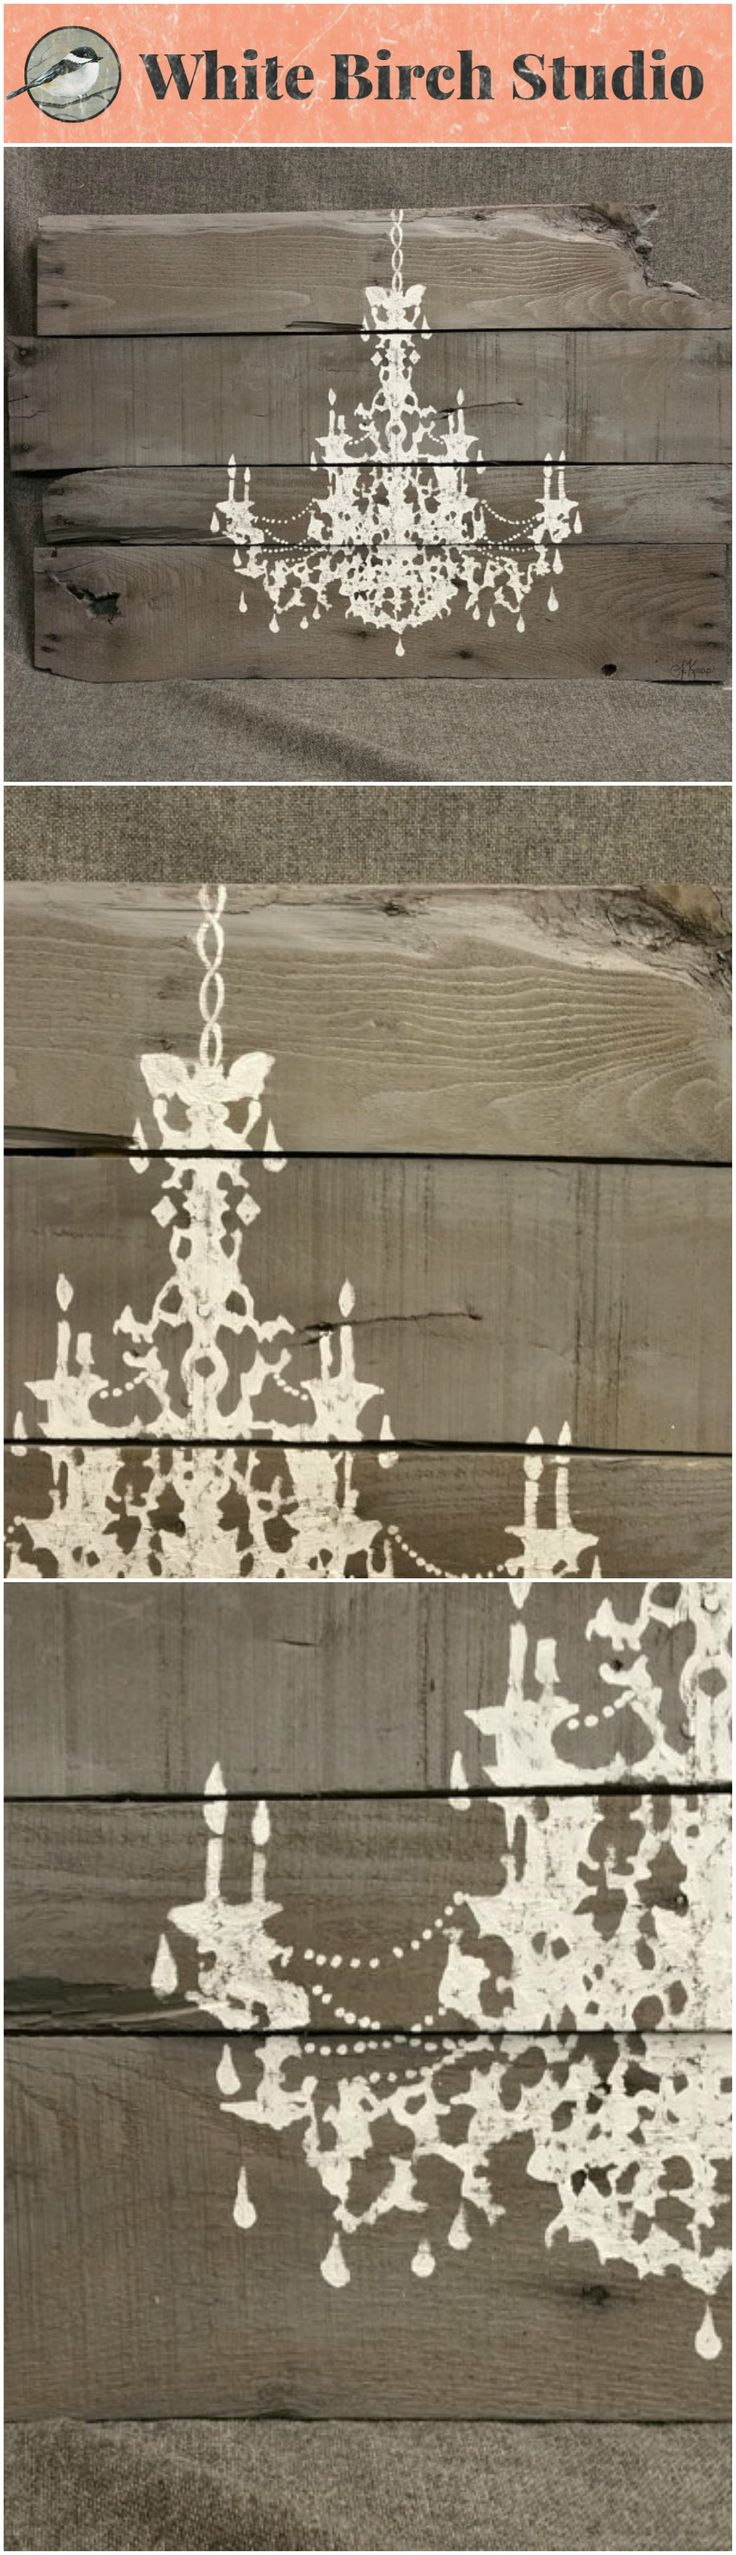 Gray Pallet Wall Art Chandelier, Reclaimed Distressed, hand painted, barnwood, Baby Girl Nursery, shabby chic  This large, unique piece is 33 in.wide x 21 in tall. It is hand painted (not stenciled) in a free-form, shadow appearance. It has been stained with a water-based gray stain.  It would be a unique, personal touch to any room in our home. It also would be a great shabby-chic accent to your little girl's bedroom or nursery.